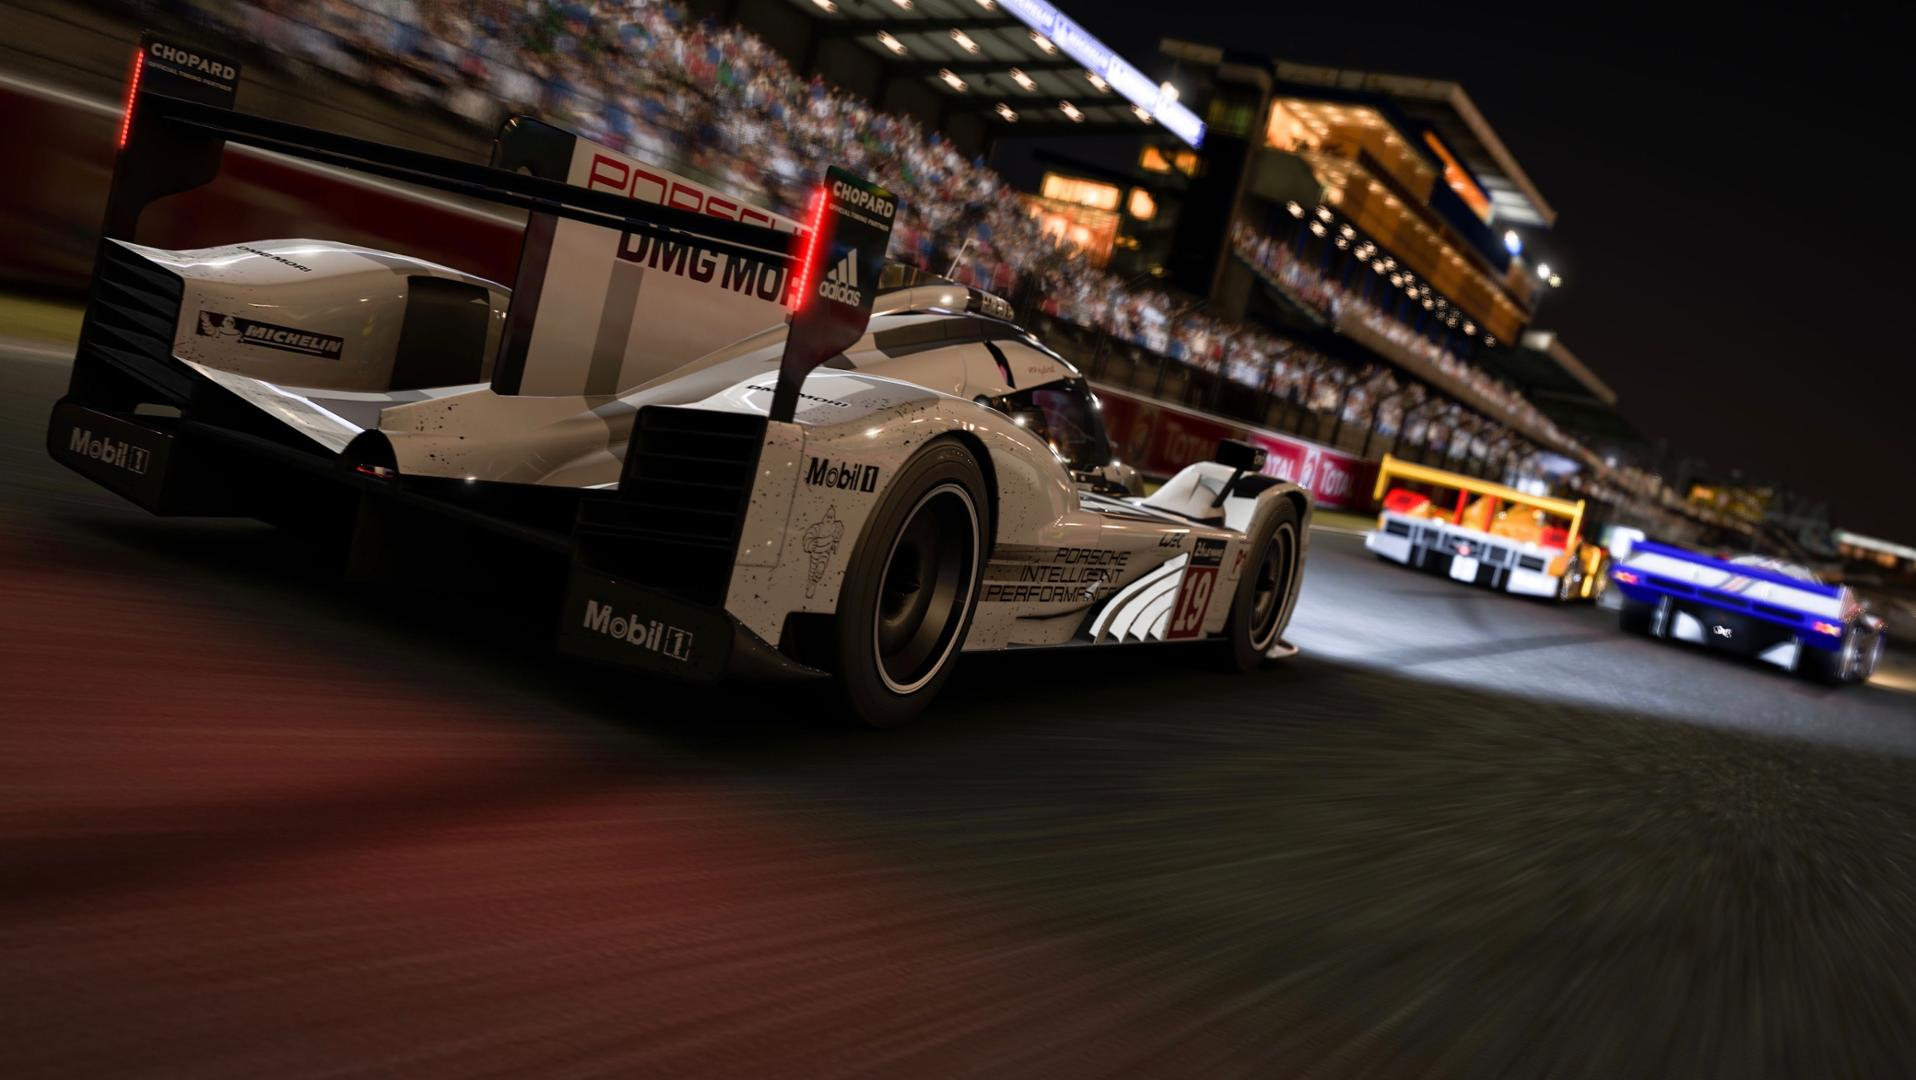 Virtual race over 24 hours in Le Mans